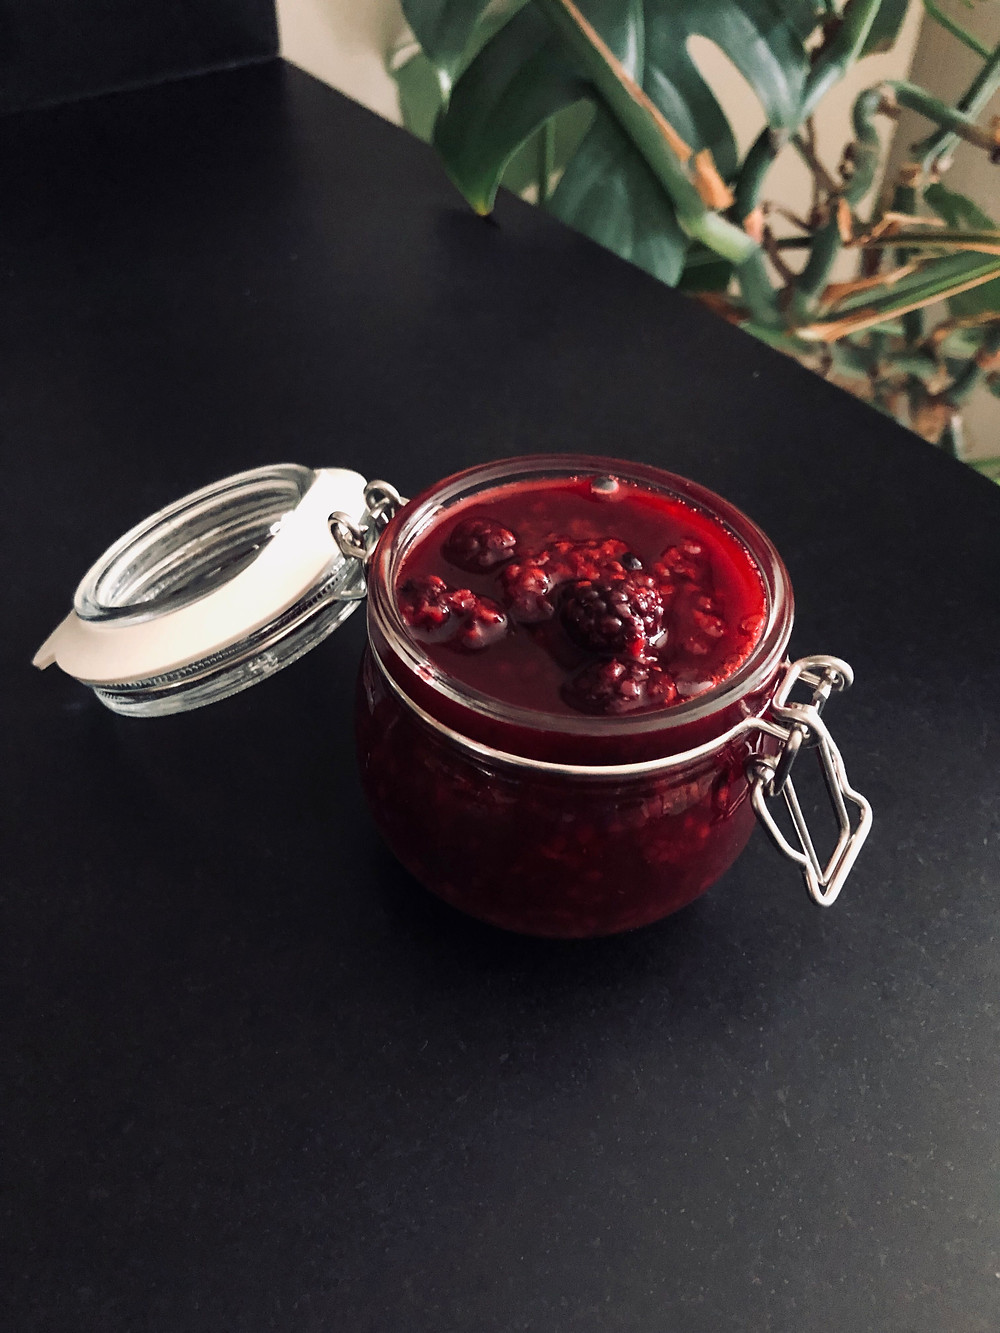 Add some extra fun to your Autumn walks. Forage for some wild blackberries and you can make delicious compote in 5 minutes flat!